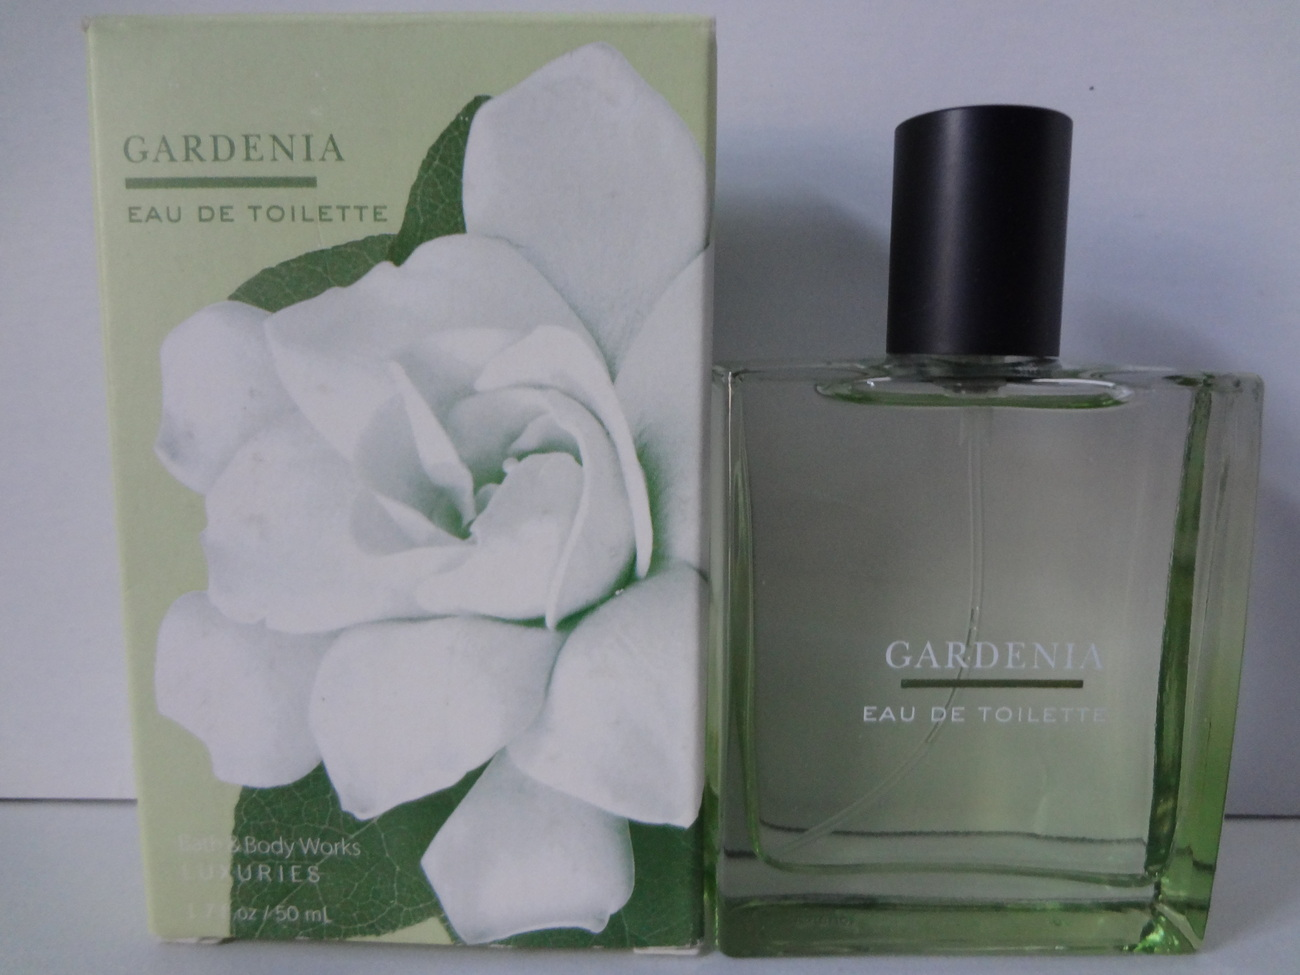 Bath & Body Works Luxuries Gardenia Eau de Toilette 1.7 fl oz / 50 ml